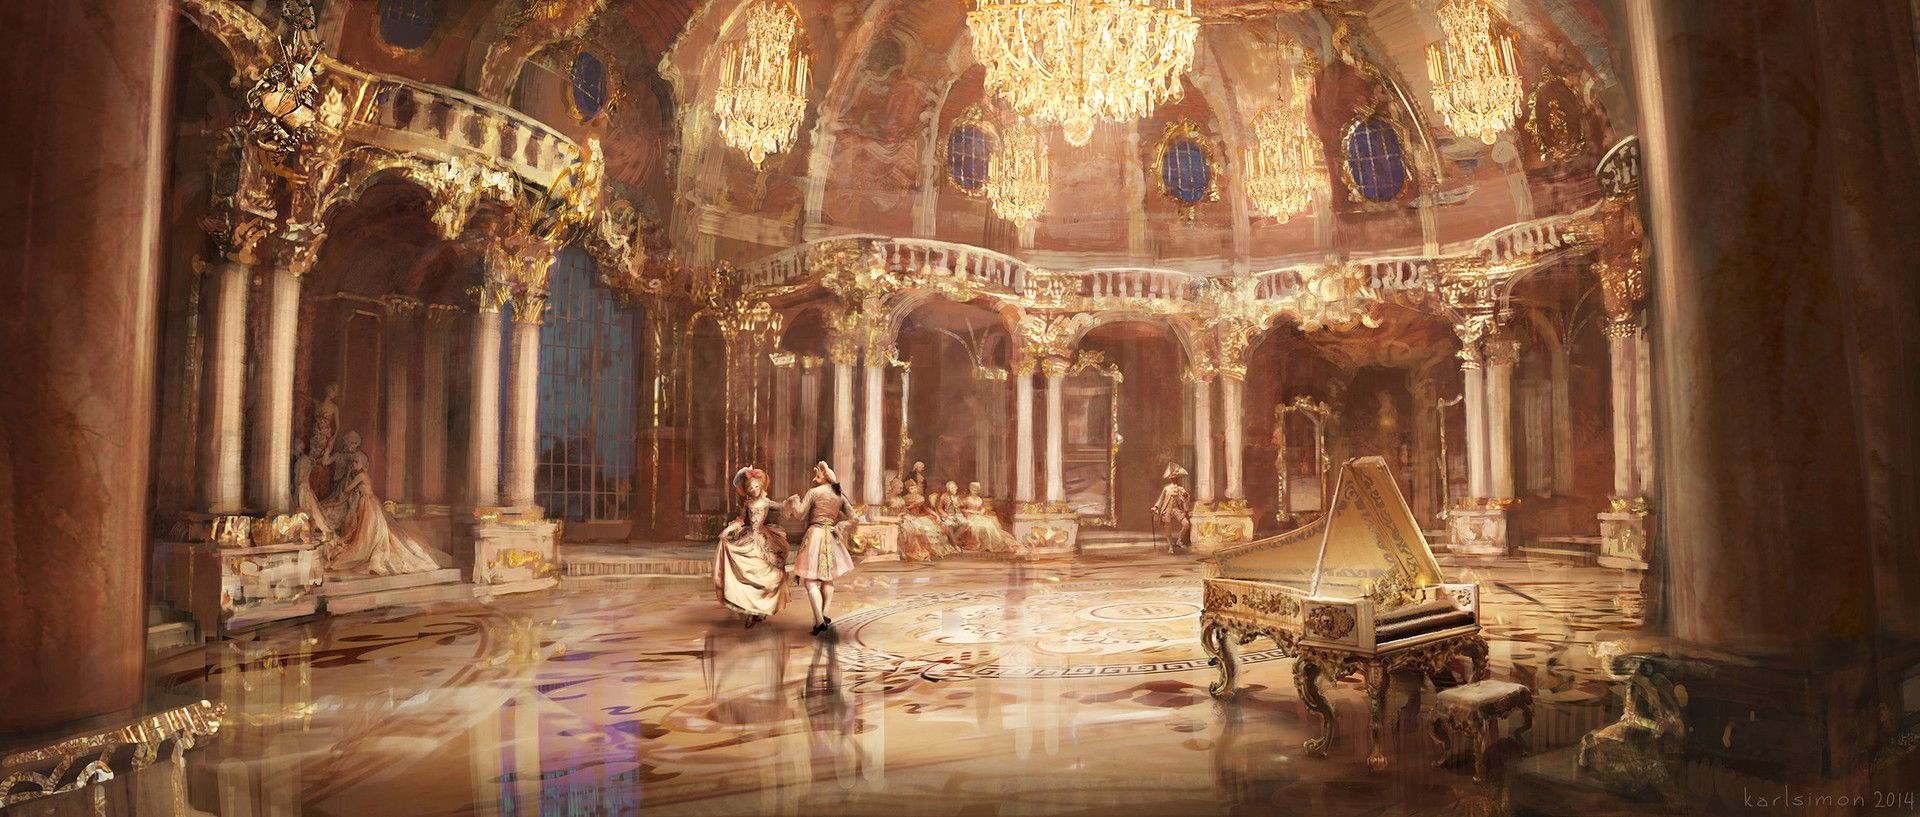 Beauty The Beast Concept Art Created For Disney S 2017 Live